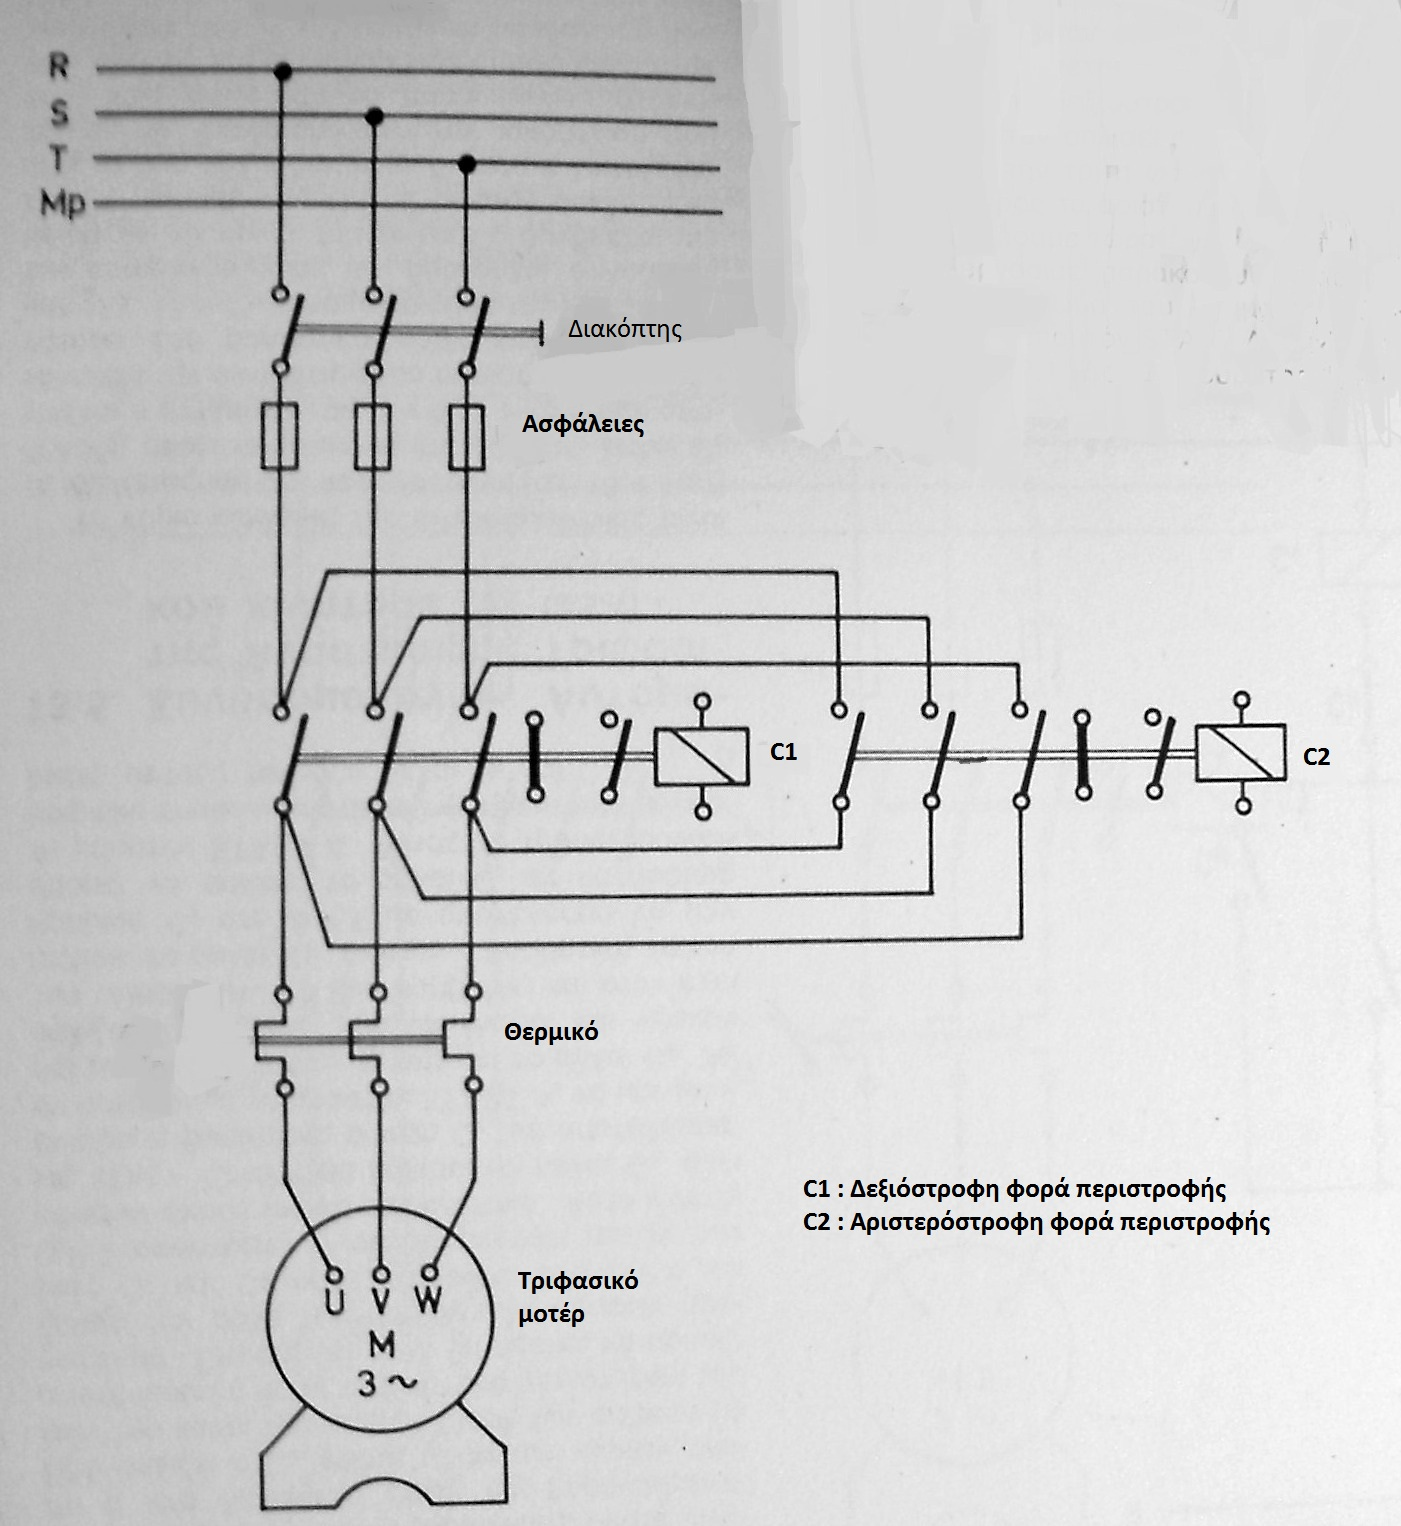 Electrician Wiring Diagram For Power Circuit Clockwise And 2 Phase Counterclockwise Rotation Three Motor